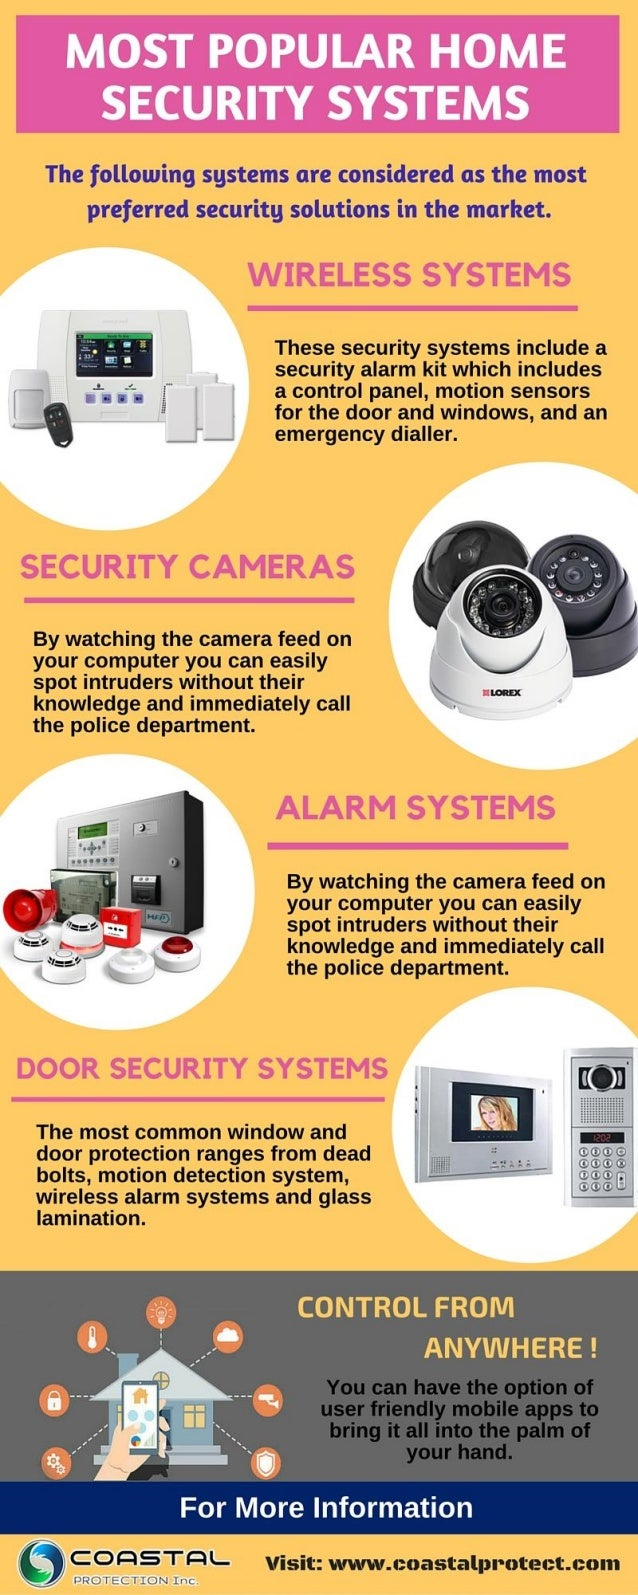 Popular home security systems